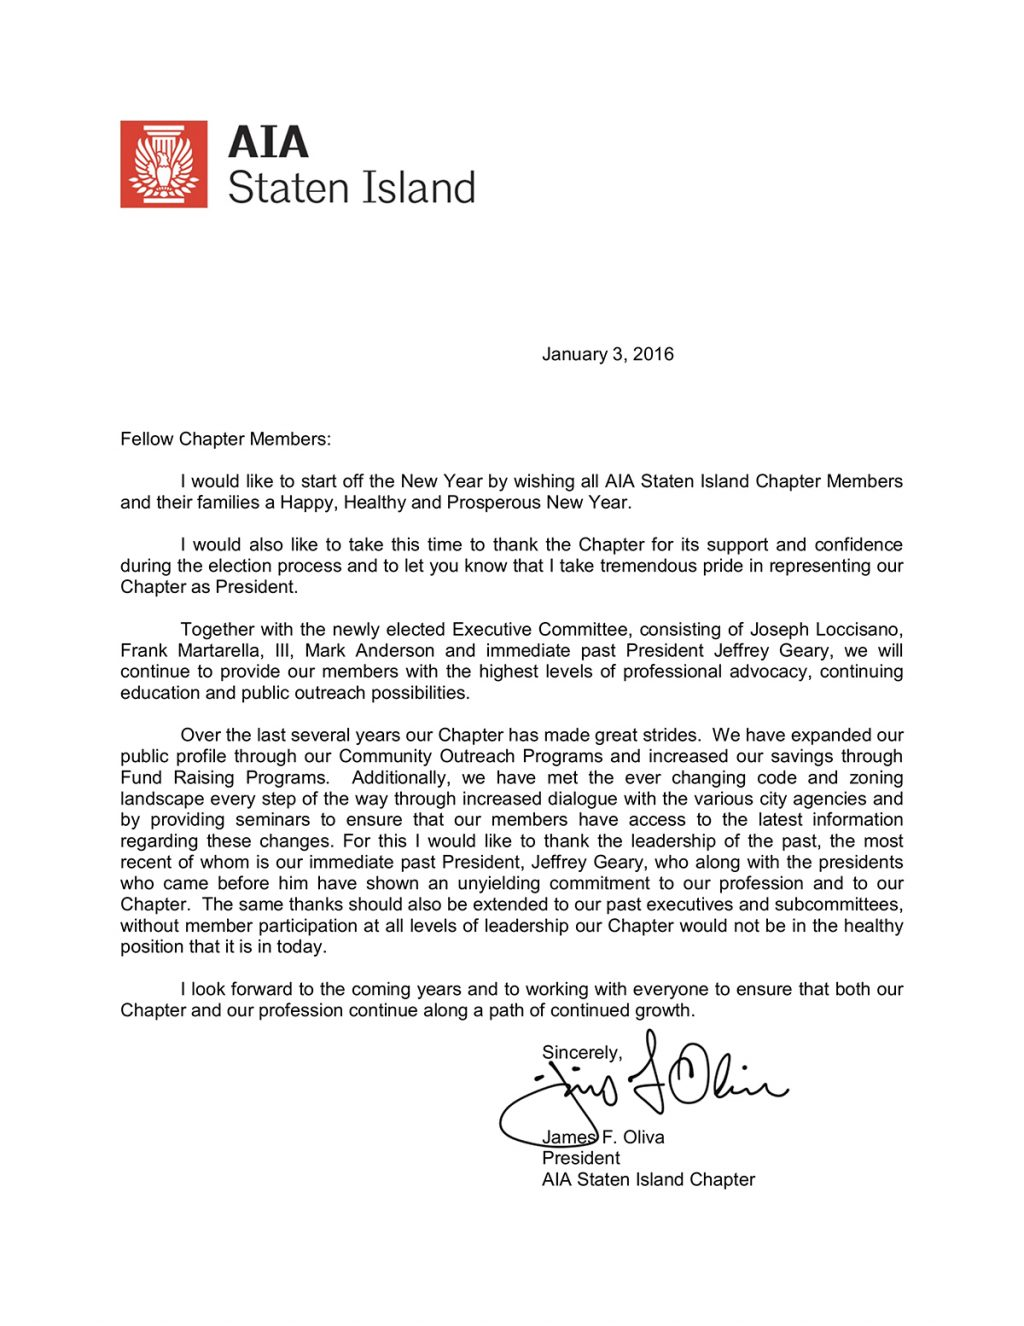 2016 Inaugural letter